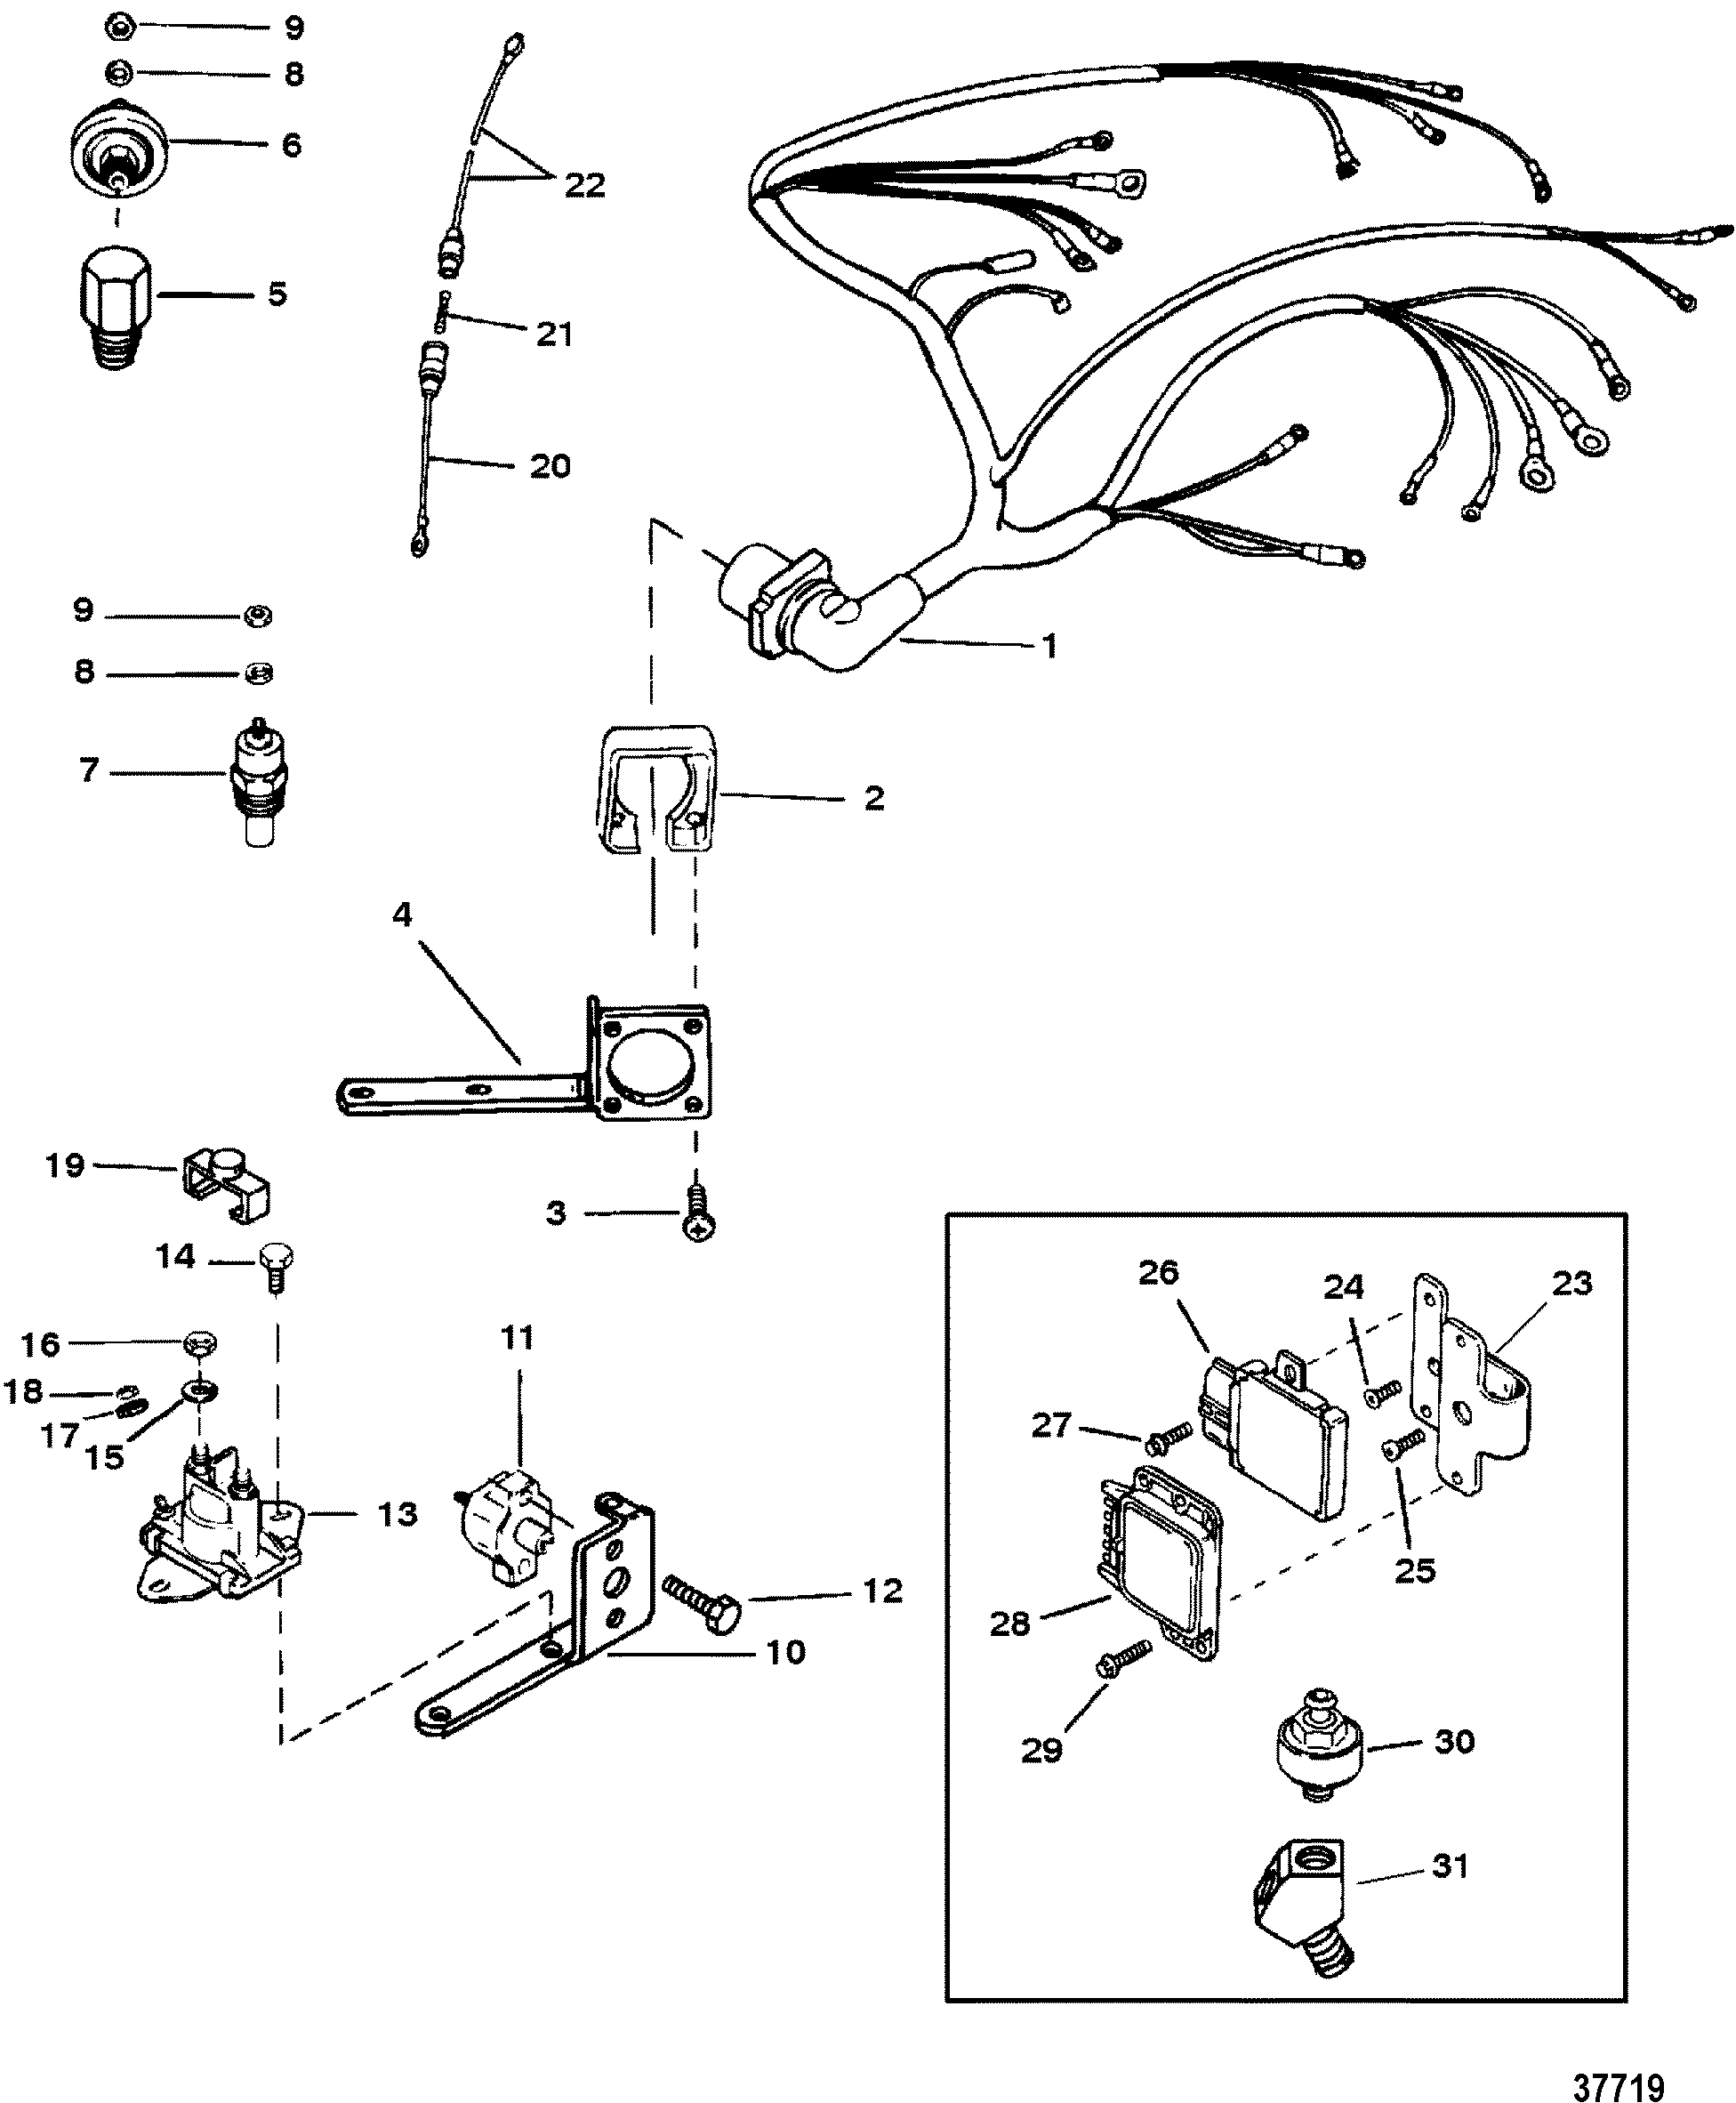 mercruiser 5 7 wiring diagram two way switch connection mercury 7l 2 bbl gm 350 v 8 1996